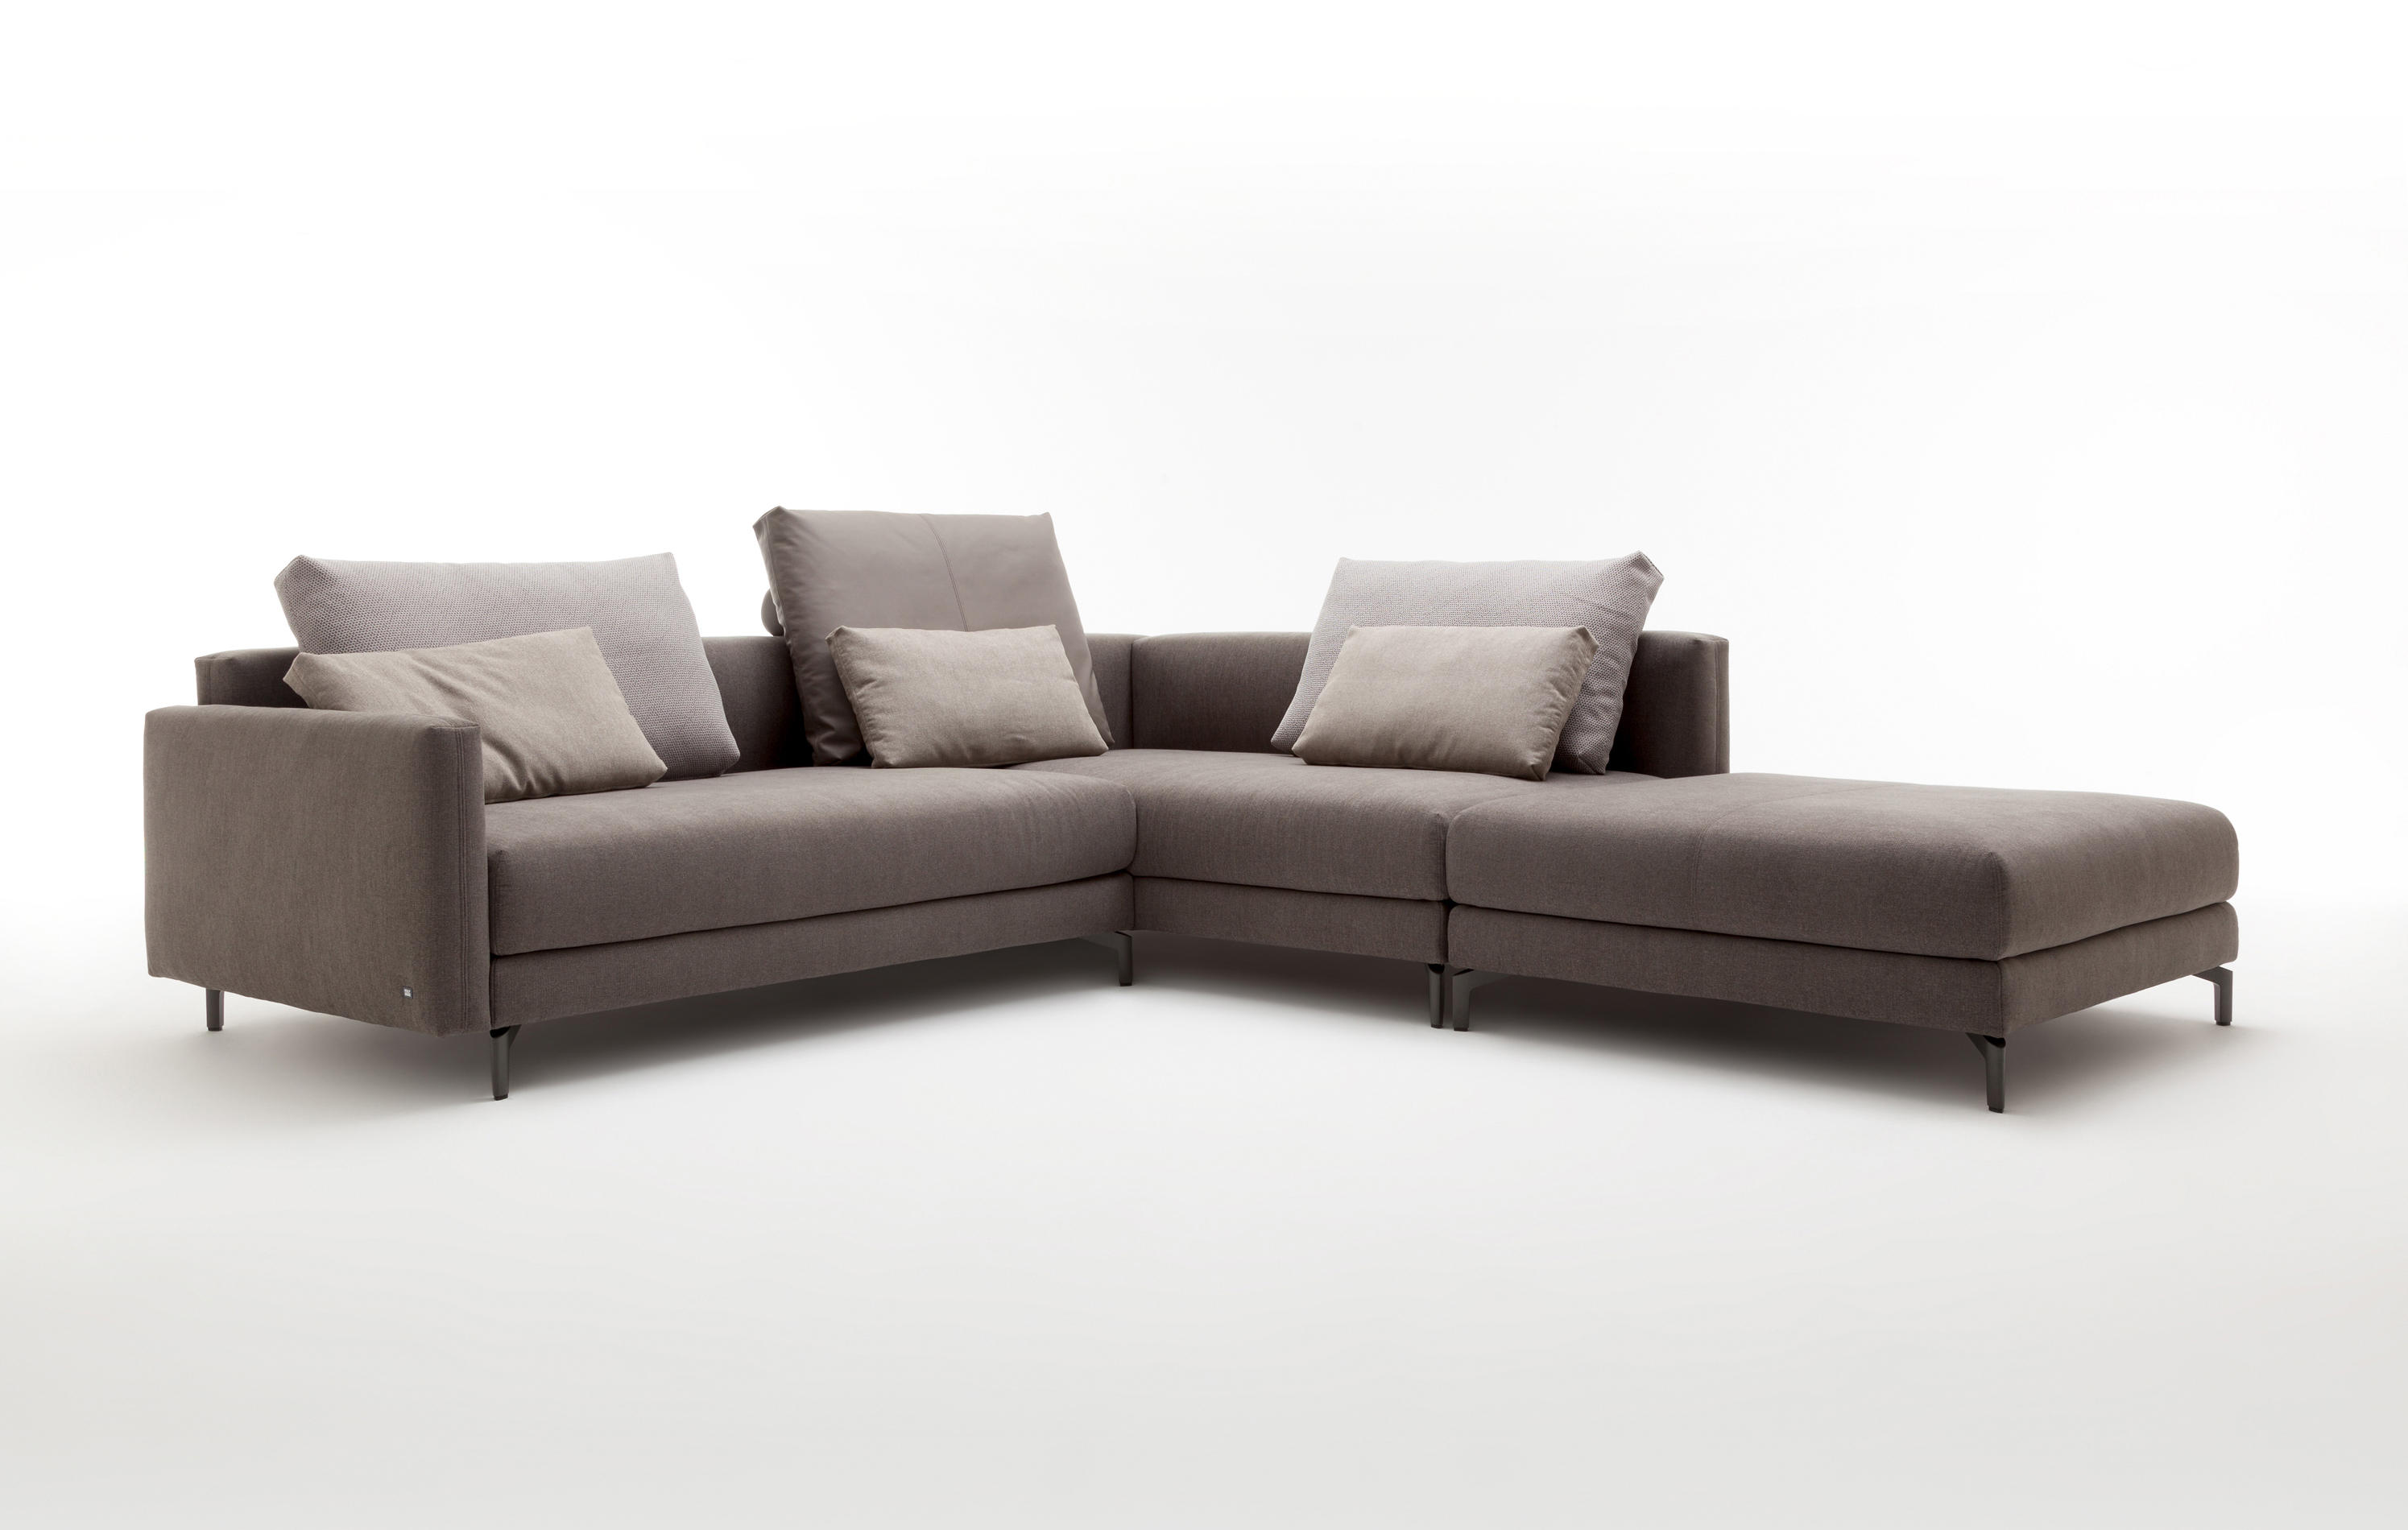 rolf benz nuvola sofas from rolf benz architonic. Black Bedroom Furniture Sets. Home Design Ideas